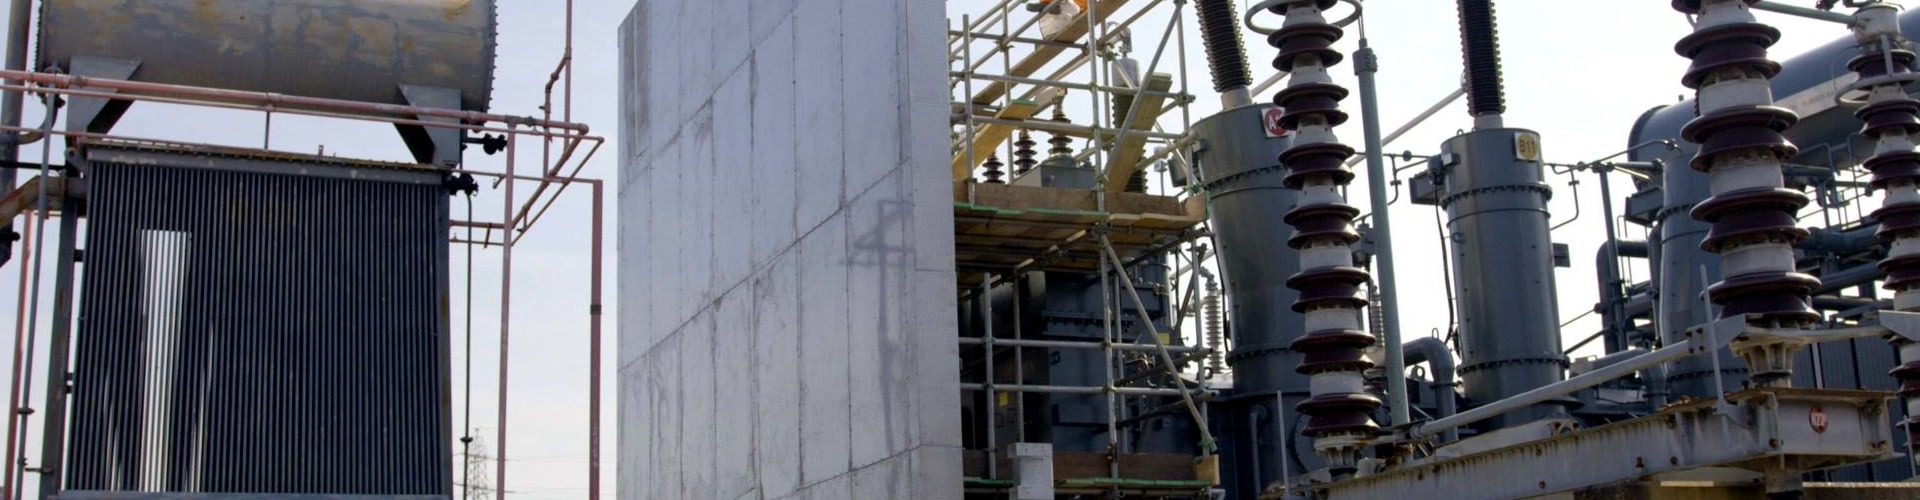 Substation Fire & Blast Protection